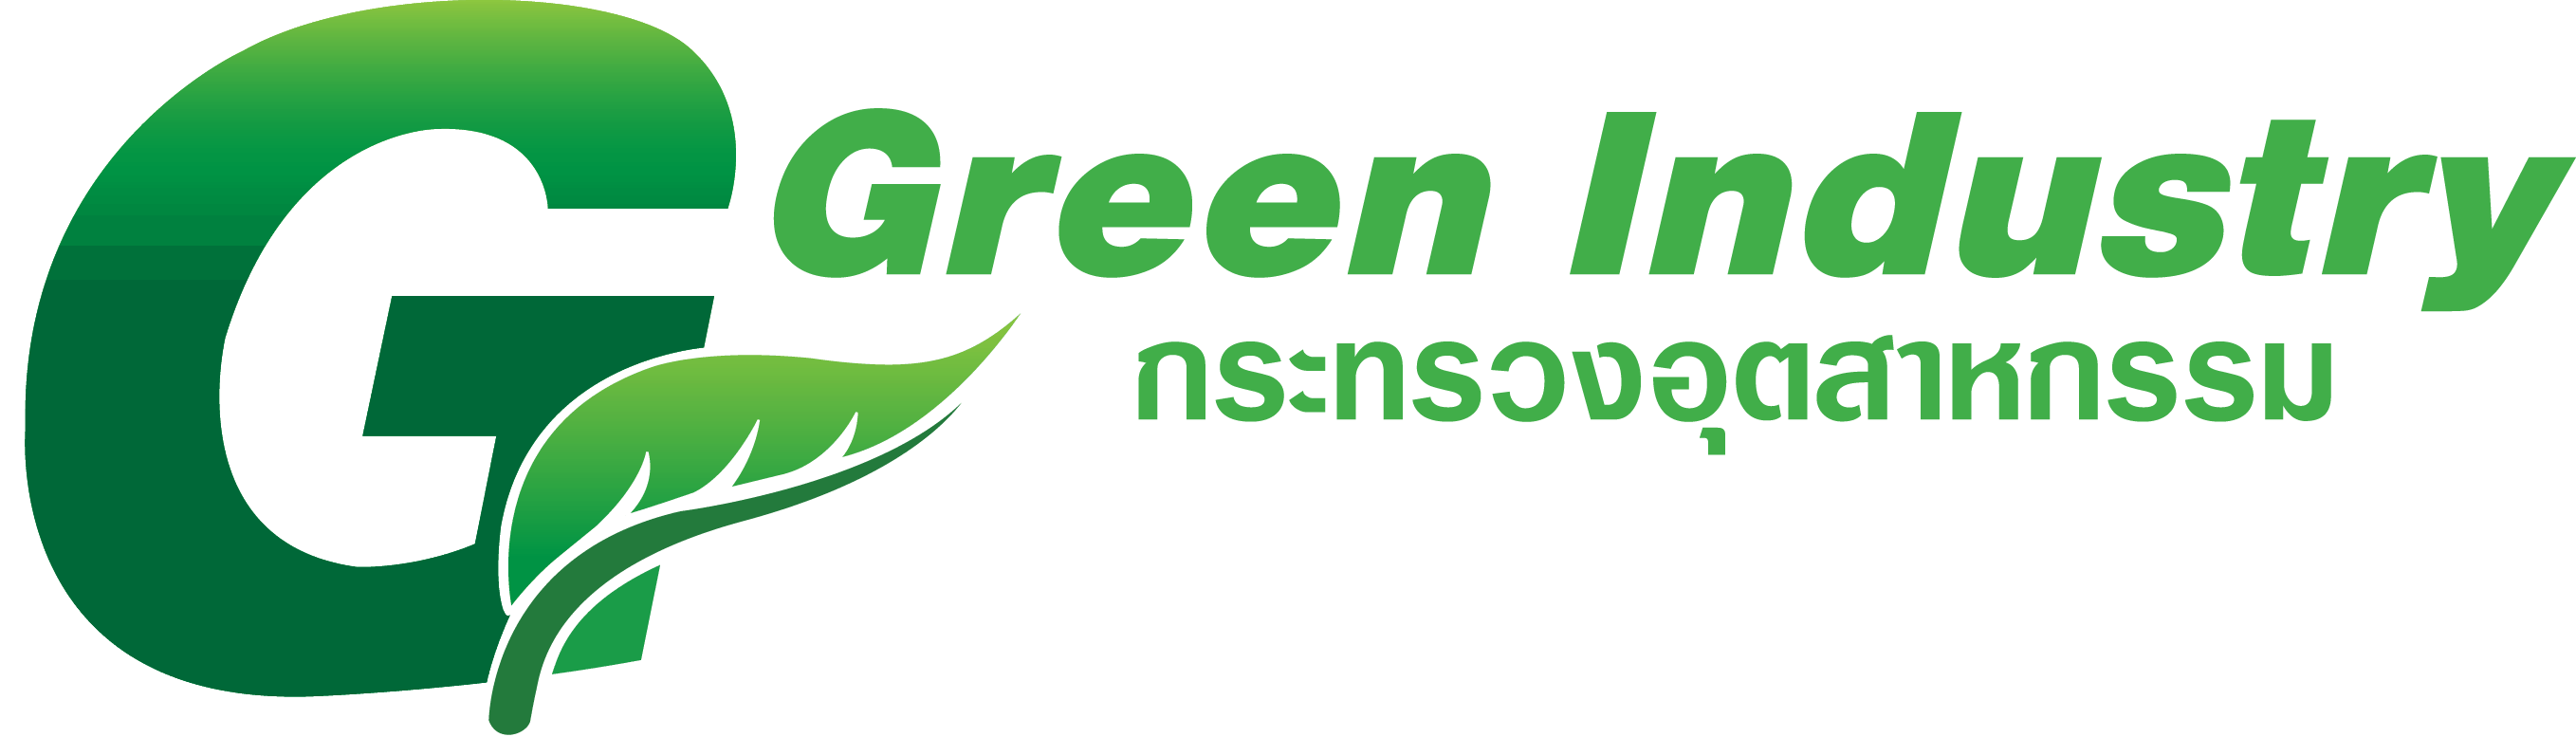 logo_green-industry.png?1622727796385